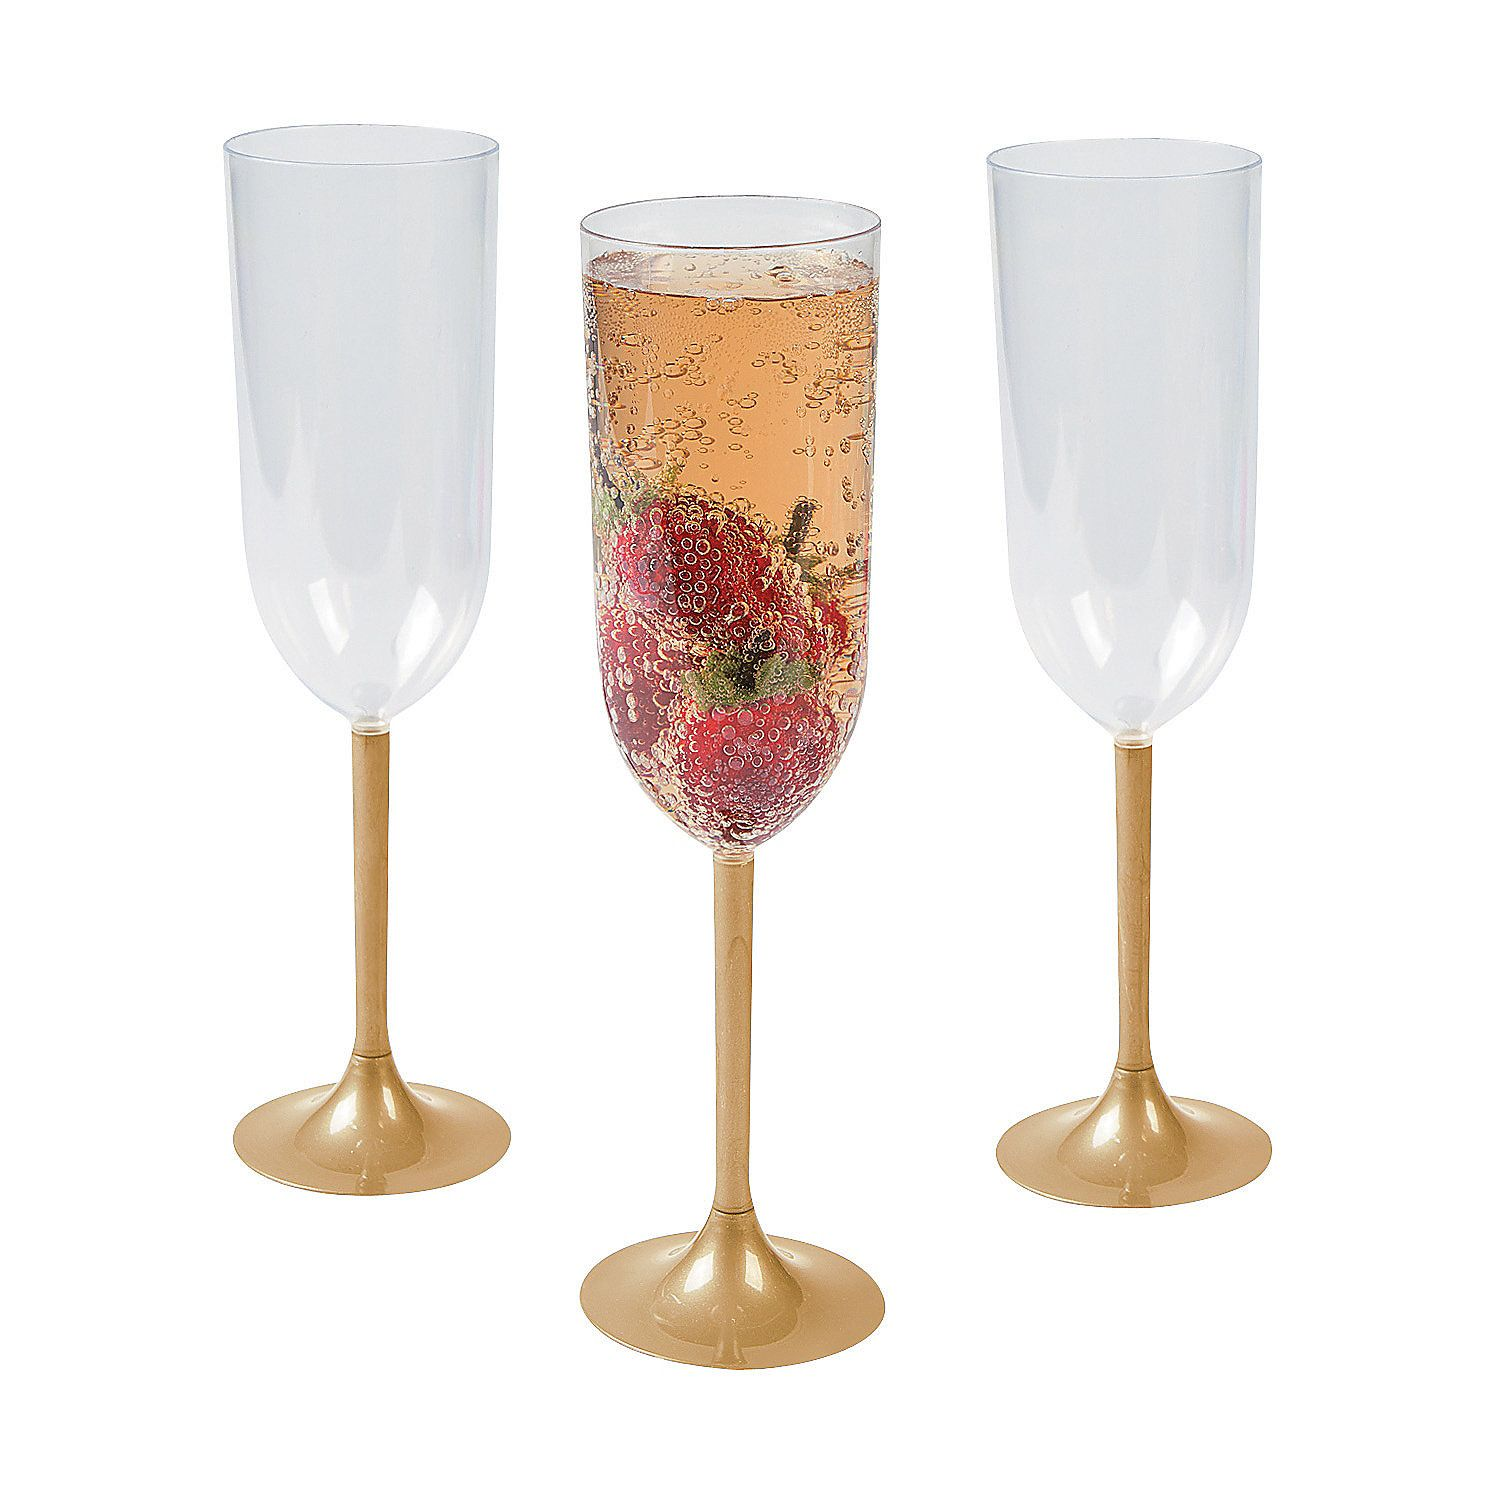 Gold Stem Champagne Glasses just in case the mason jar